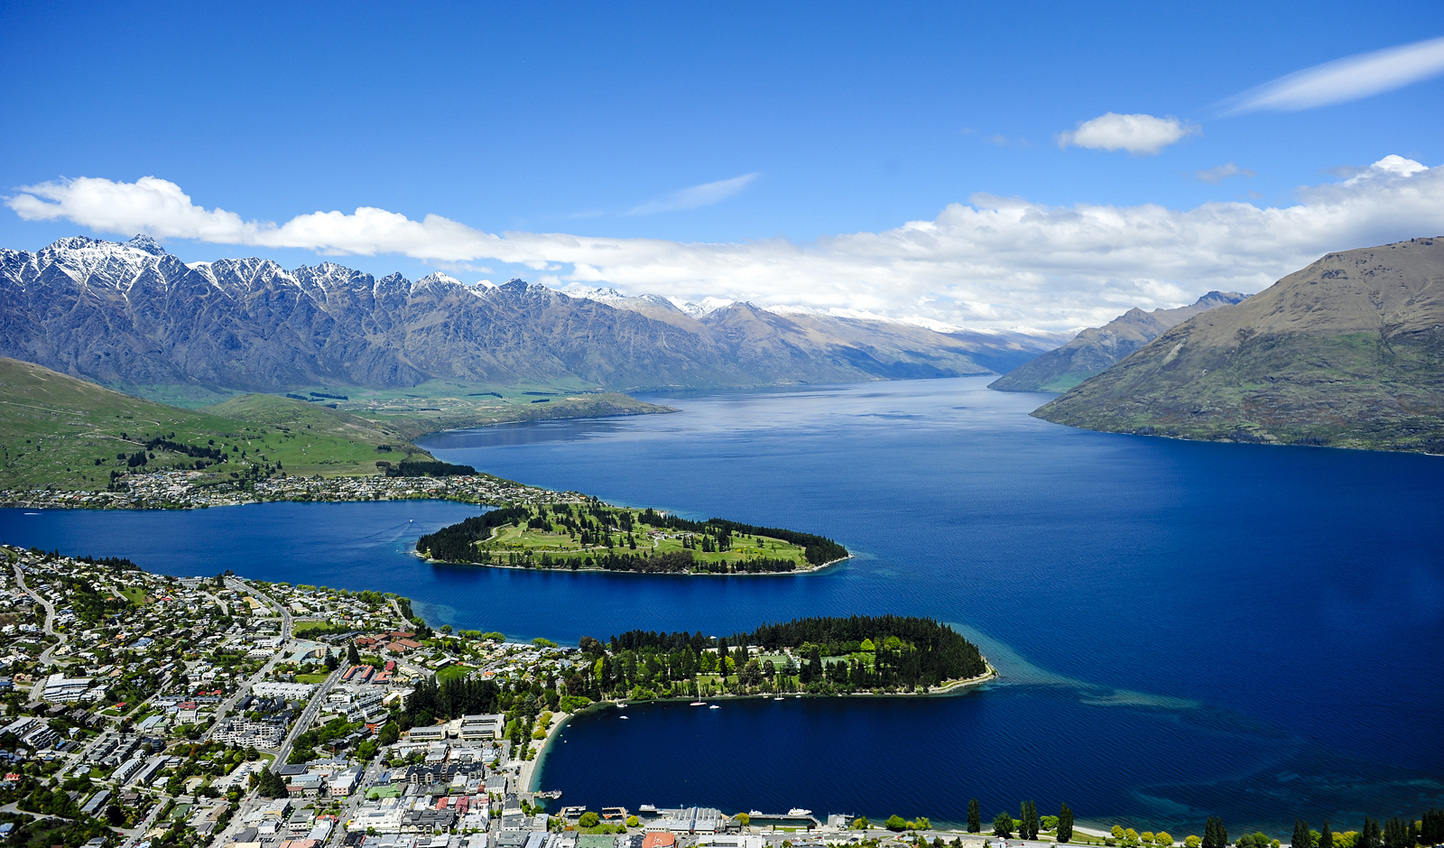 Kickstart your adventure in Queenstown